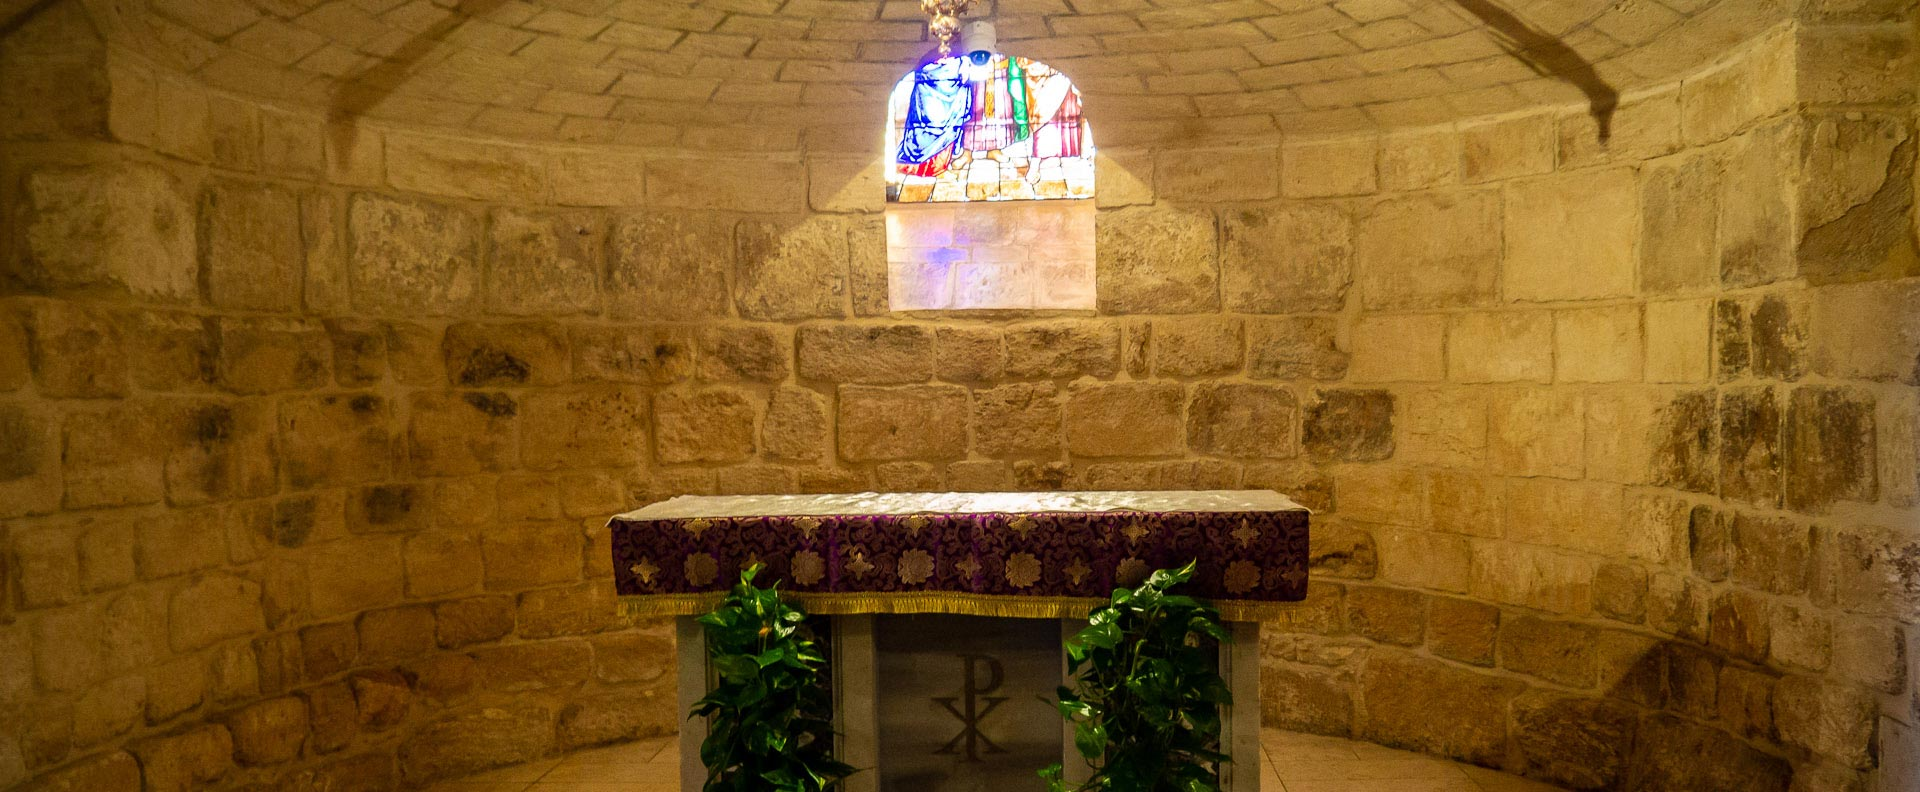 Church of Saint Joseph in Nazareth